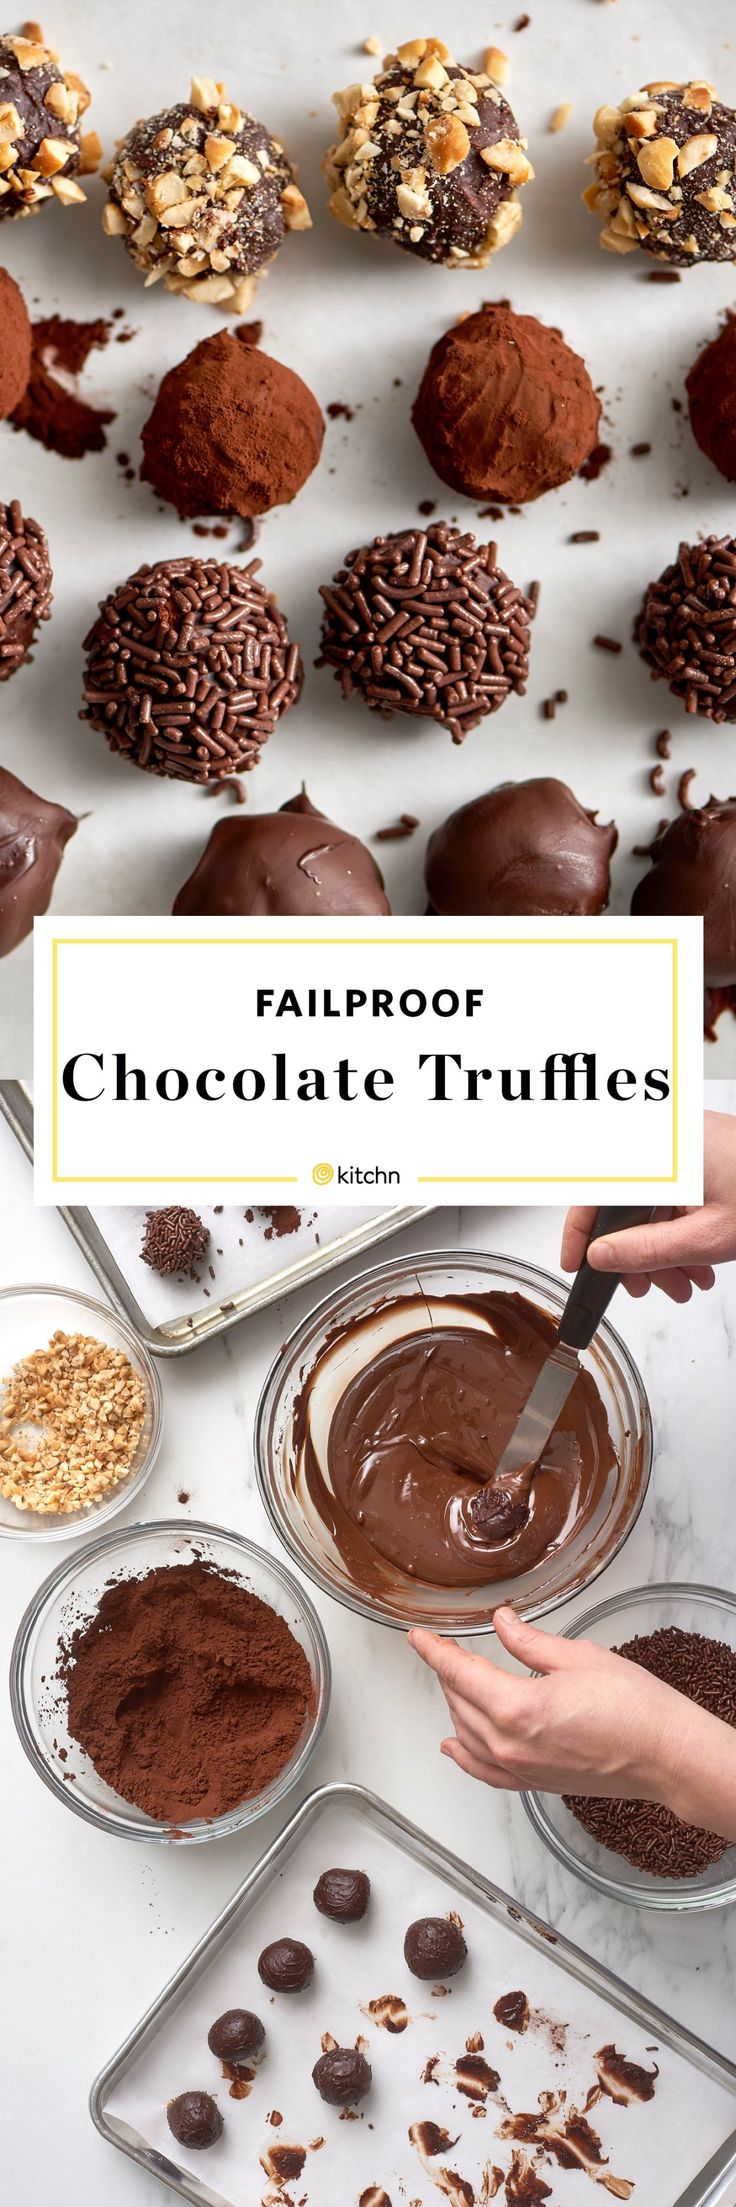 How to make easy homemade chocolate truffles from scratch. Need recipes and ideas for easy holiday or christmas gifts for family and friends? These simple, no bake, DIY truffles are perfect for adults AND kids.  You'll need dark or bittersweet chocolate, heavy cream and Dutch cocoa powder, chocolate sprinkles, finely chopped nuts, or melted chocolate for coating.